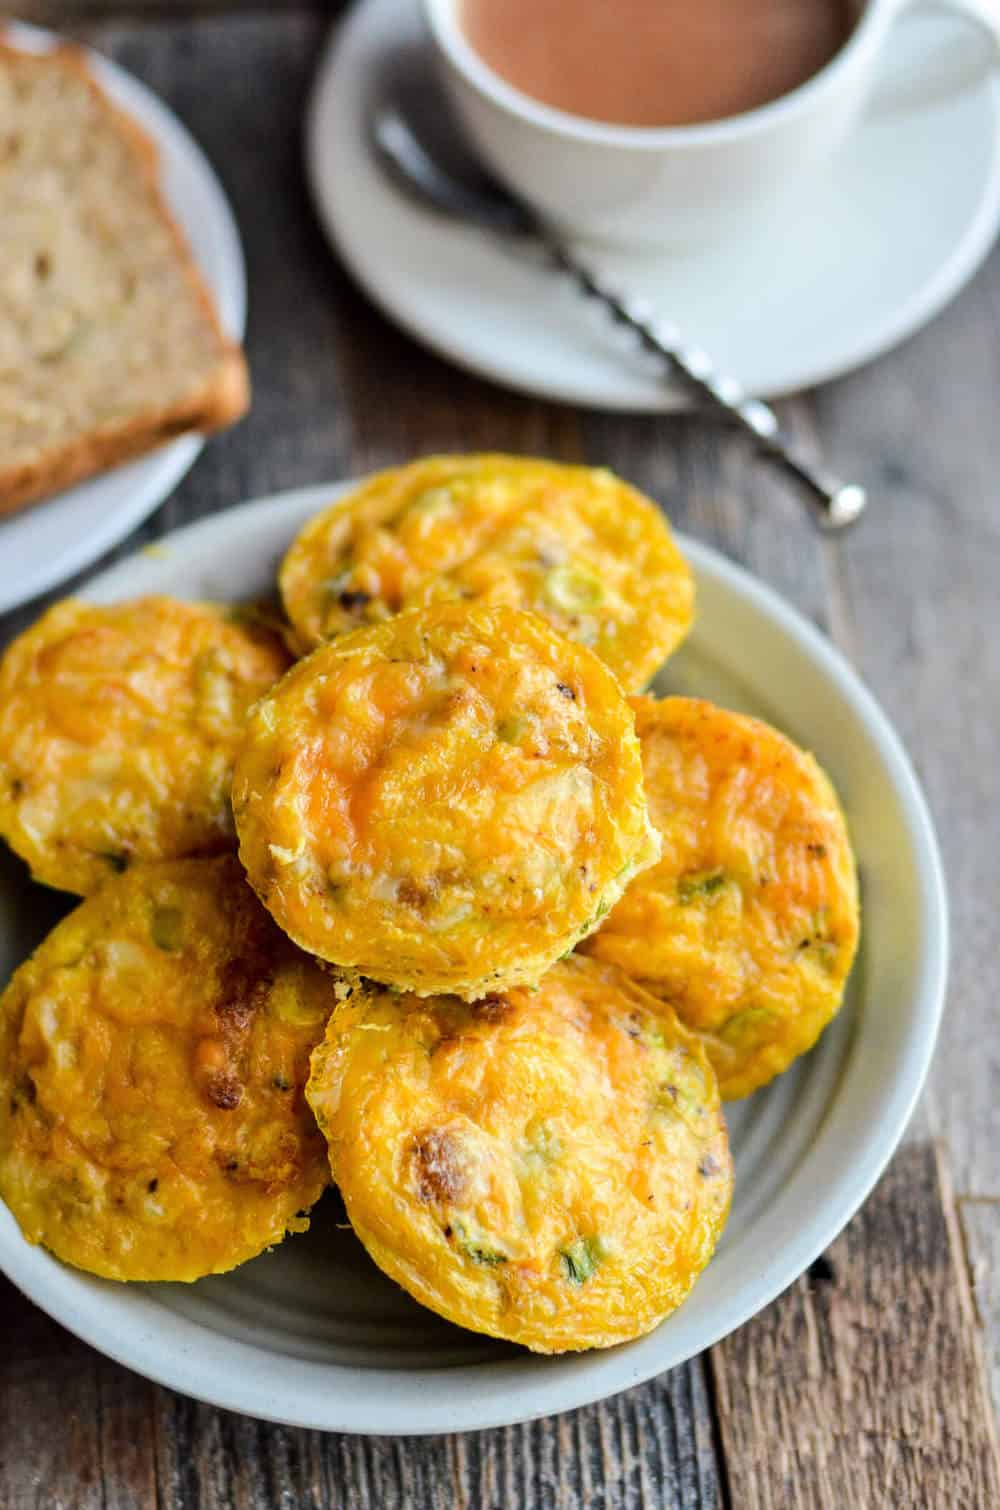 This egg muffin recipe is SO easy! Yes, you can make a quick, ready-to-eat breakfast in a muffin tin. Perfect for busy families and working folks!